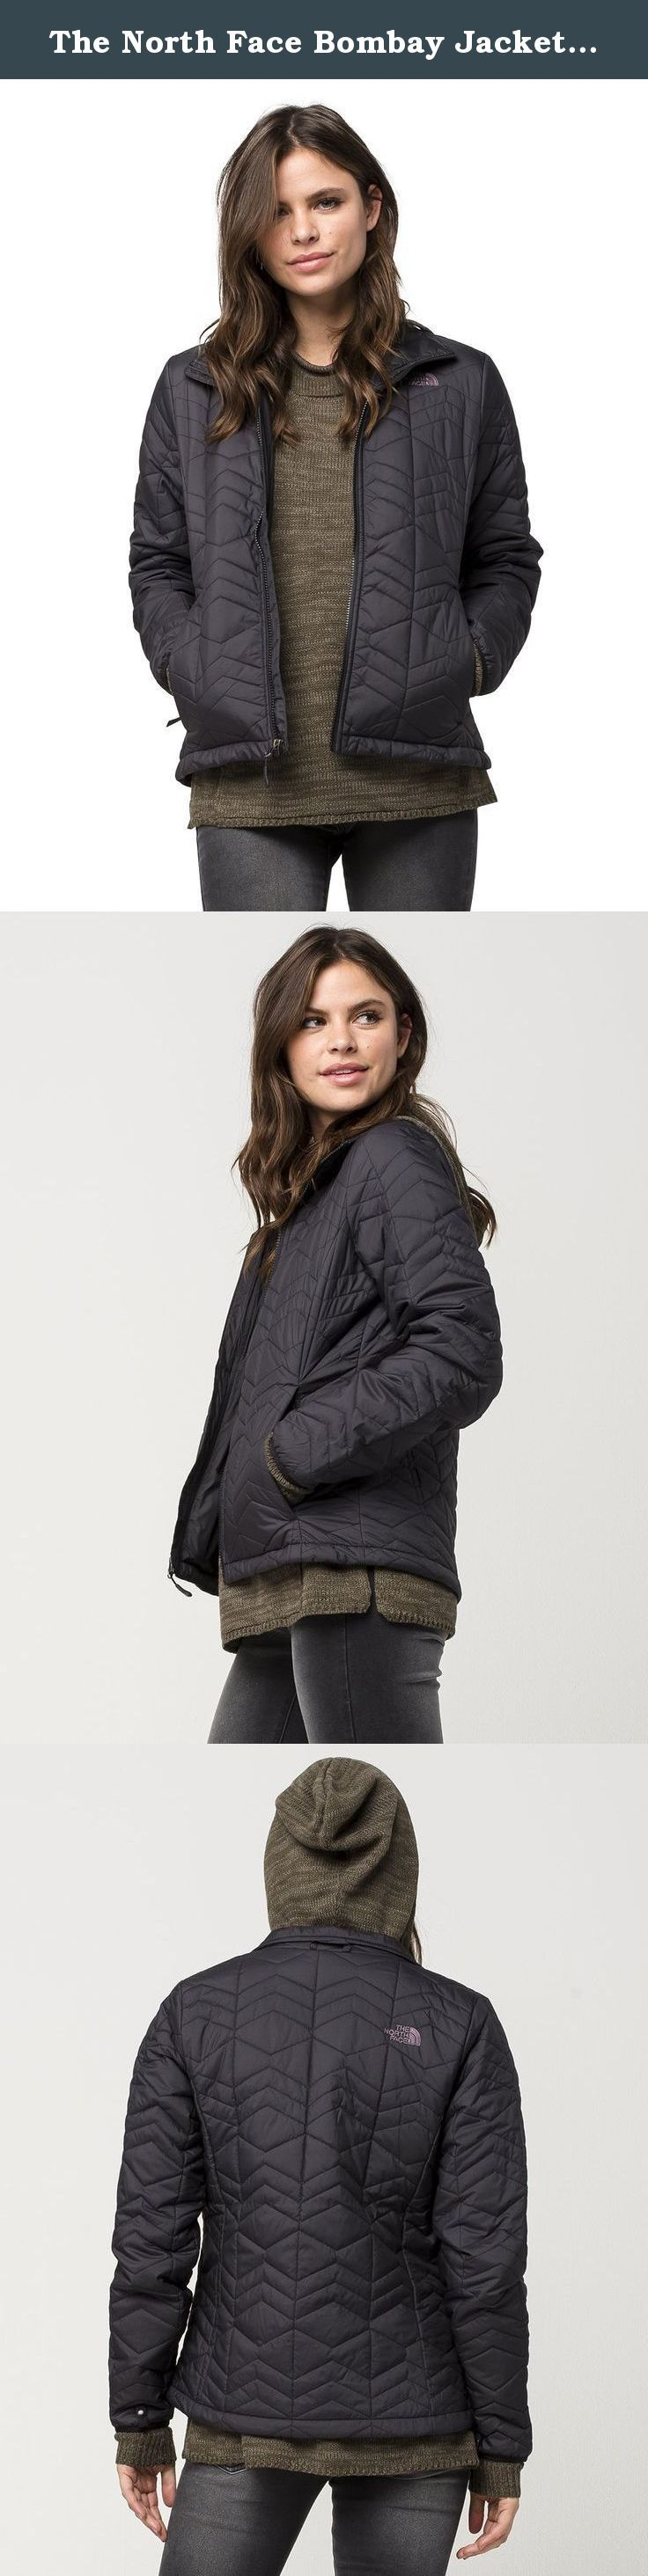 The North Face Bombay Jacket Women's TNF Black X-Large. Choosing the right mid-layer means staying out on the hill longer, and this alpine jacket features (100 g) insulation to keep you warmer in cool-to-cold conditions. When worn as a standalone jacket, the water-resistant exterior sheds light moisture.